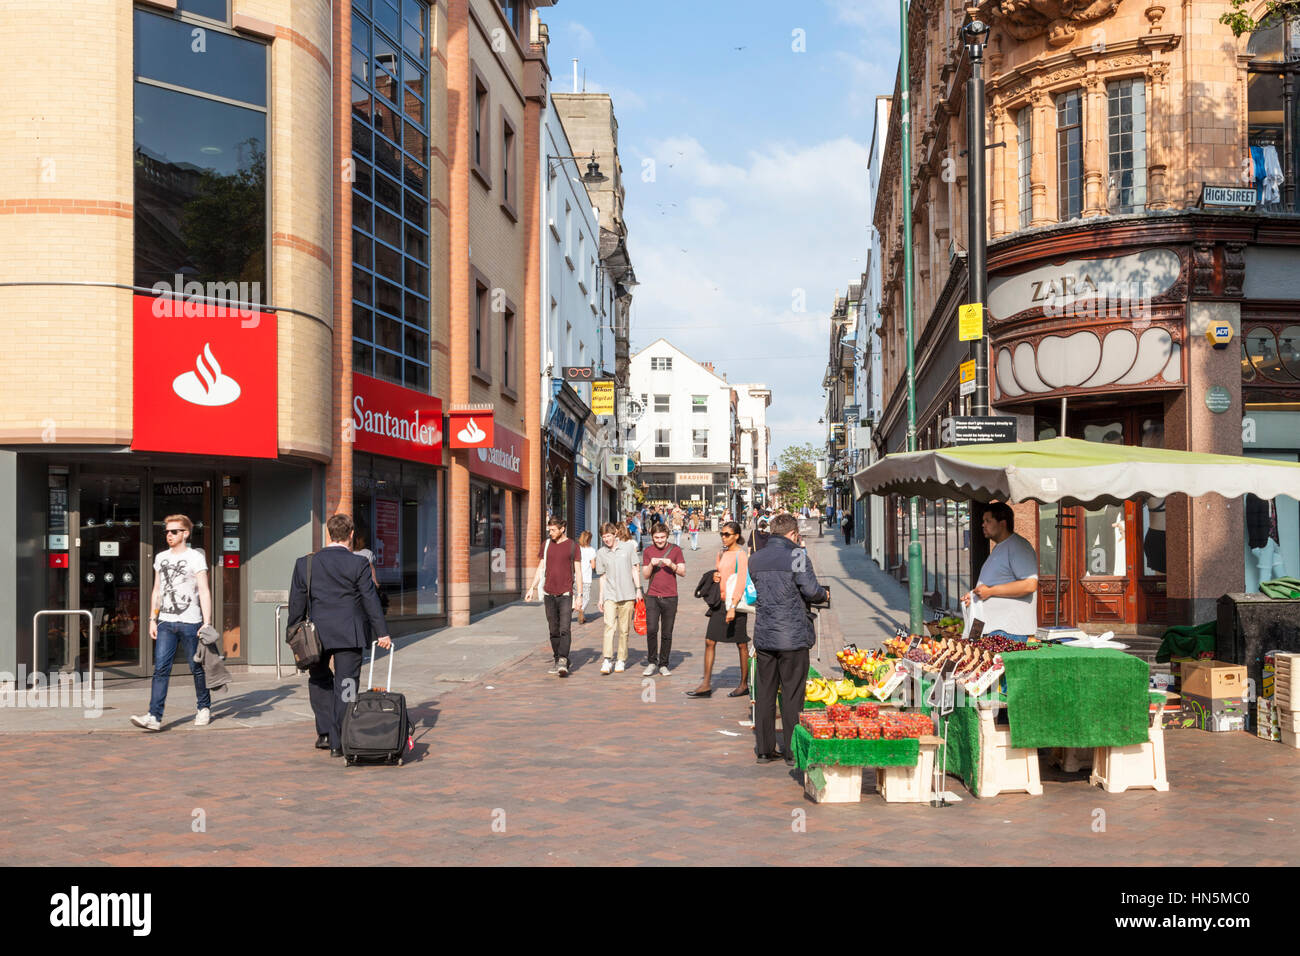 Market trader and other people in a street view of Nottingham city centre, England, UK - Stock Image